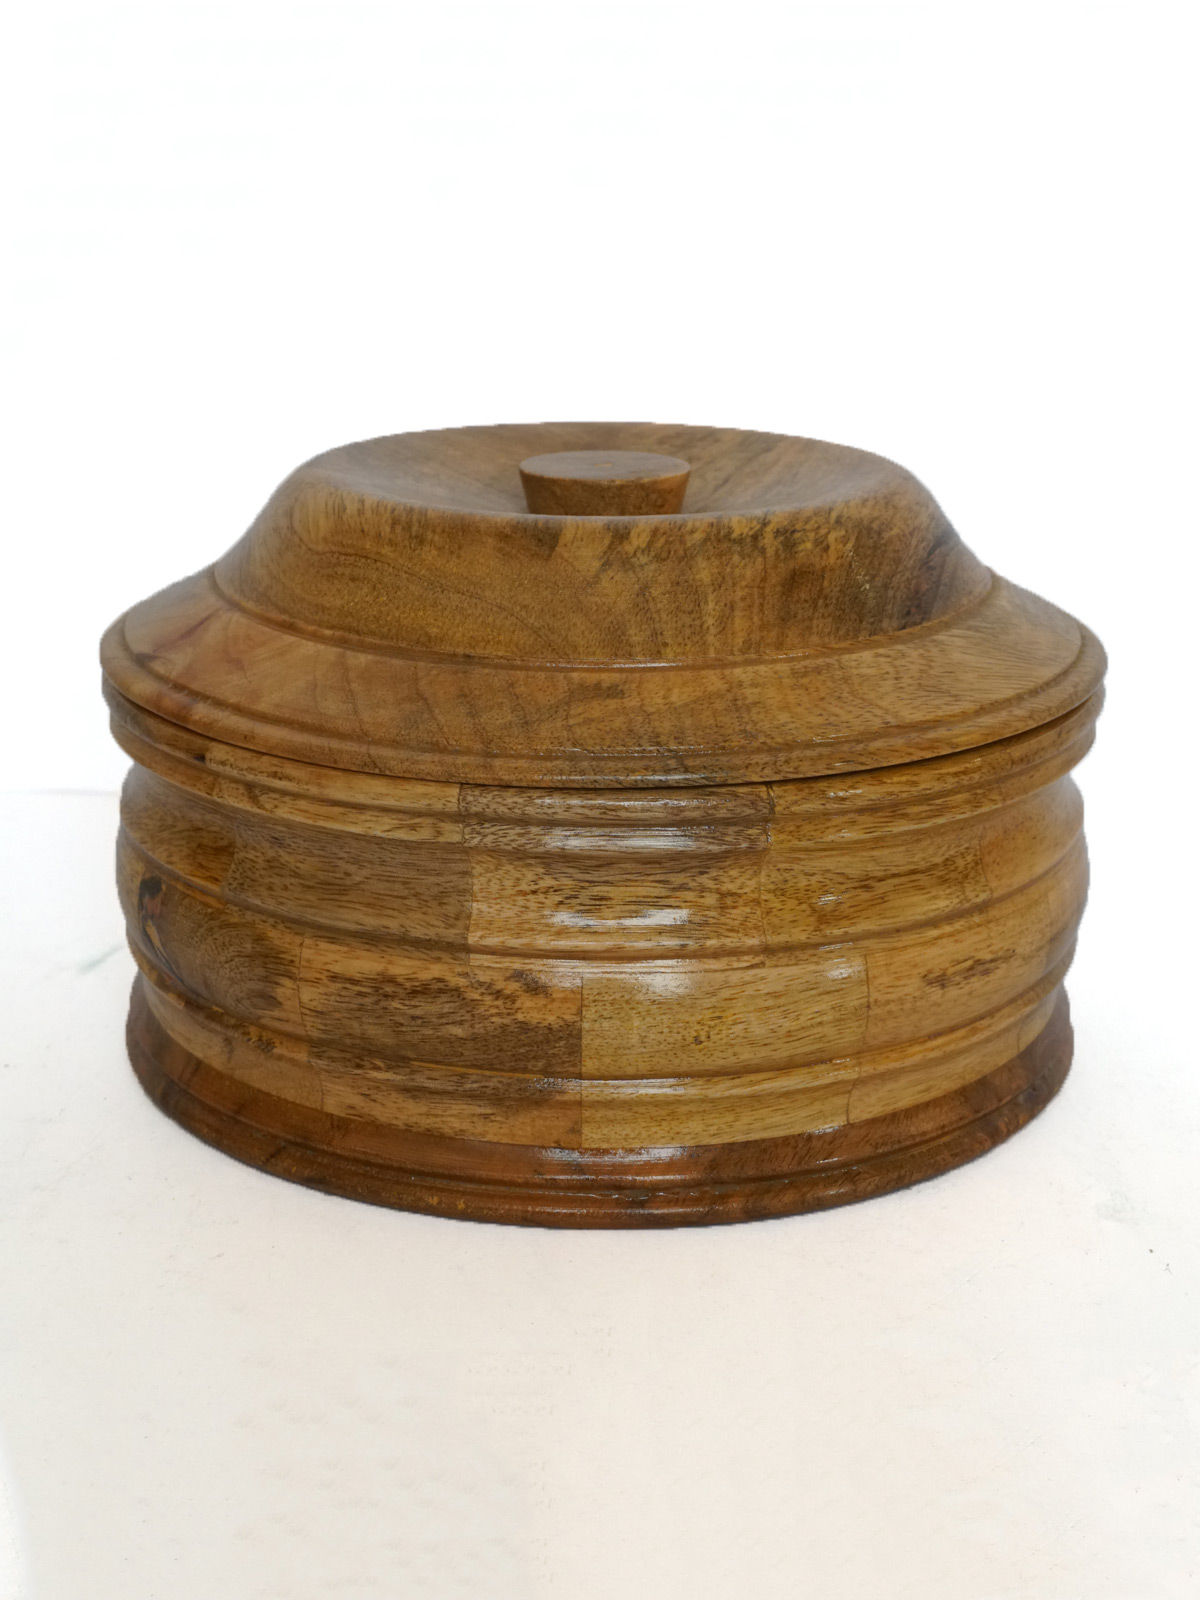 INTHING Chappati Bowl with Lid